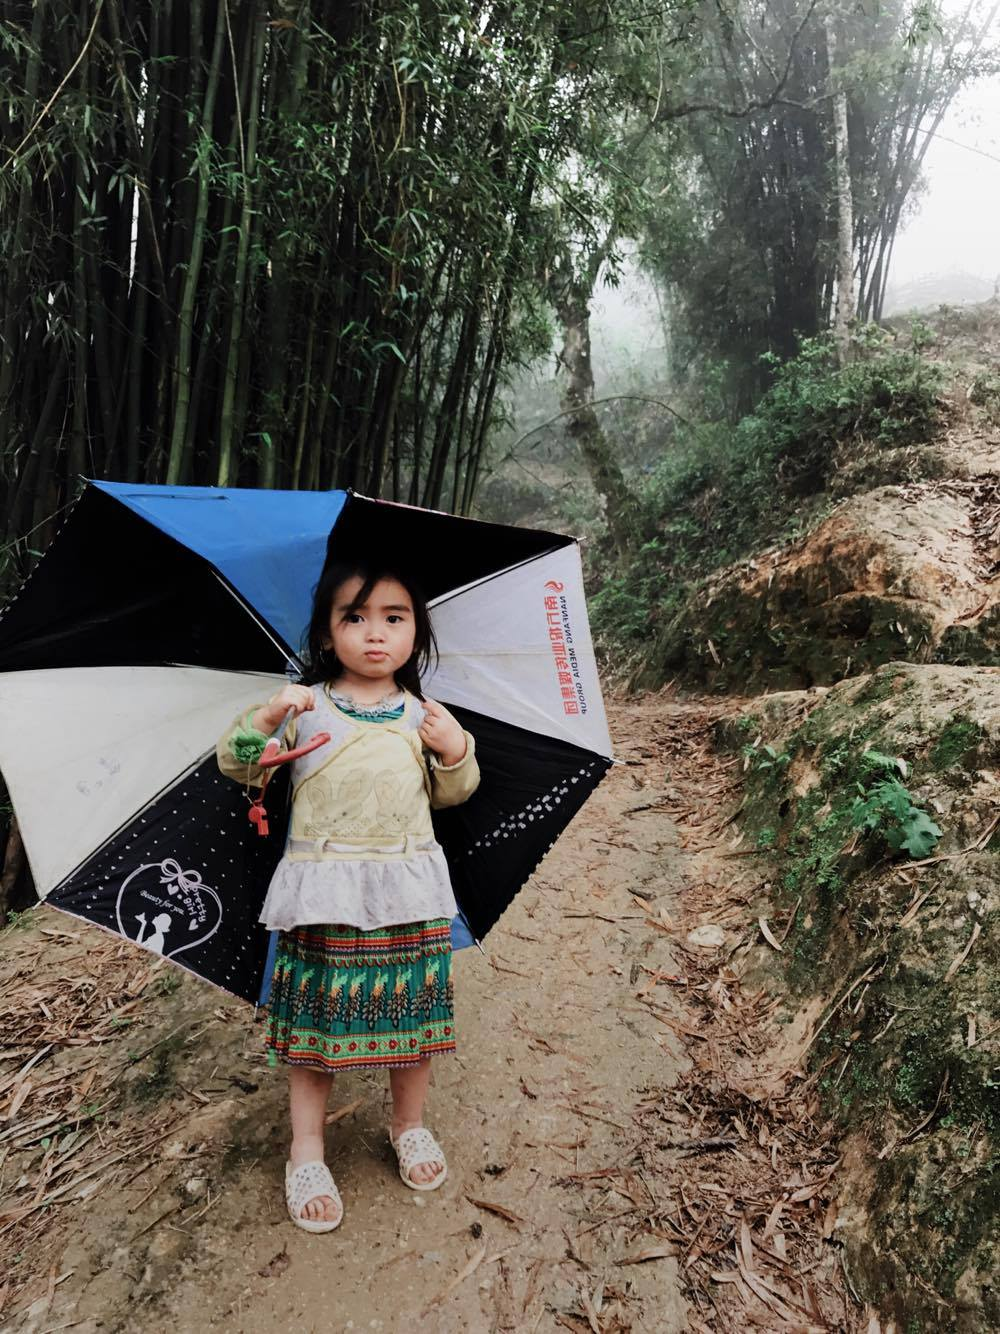 Hmong Child in Sapa